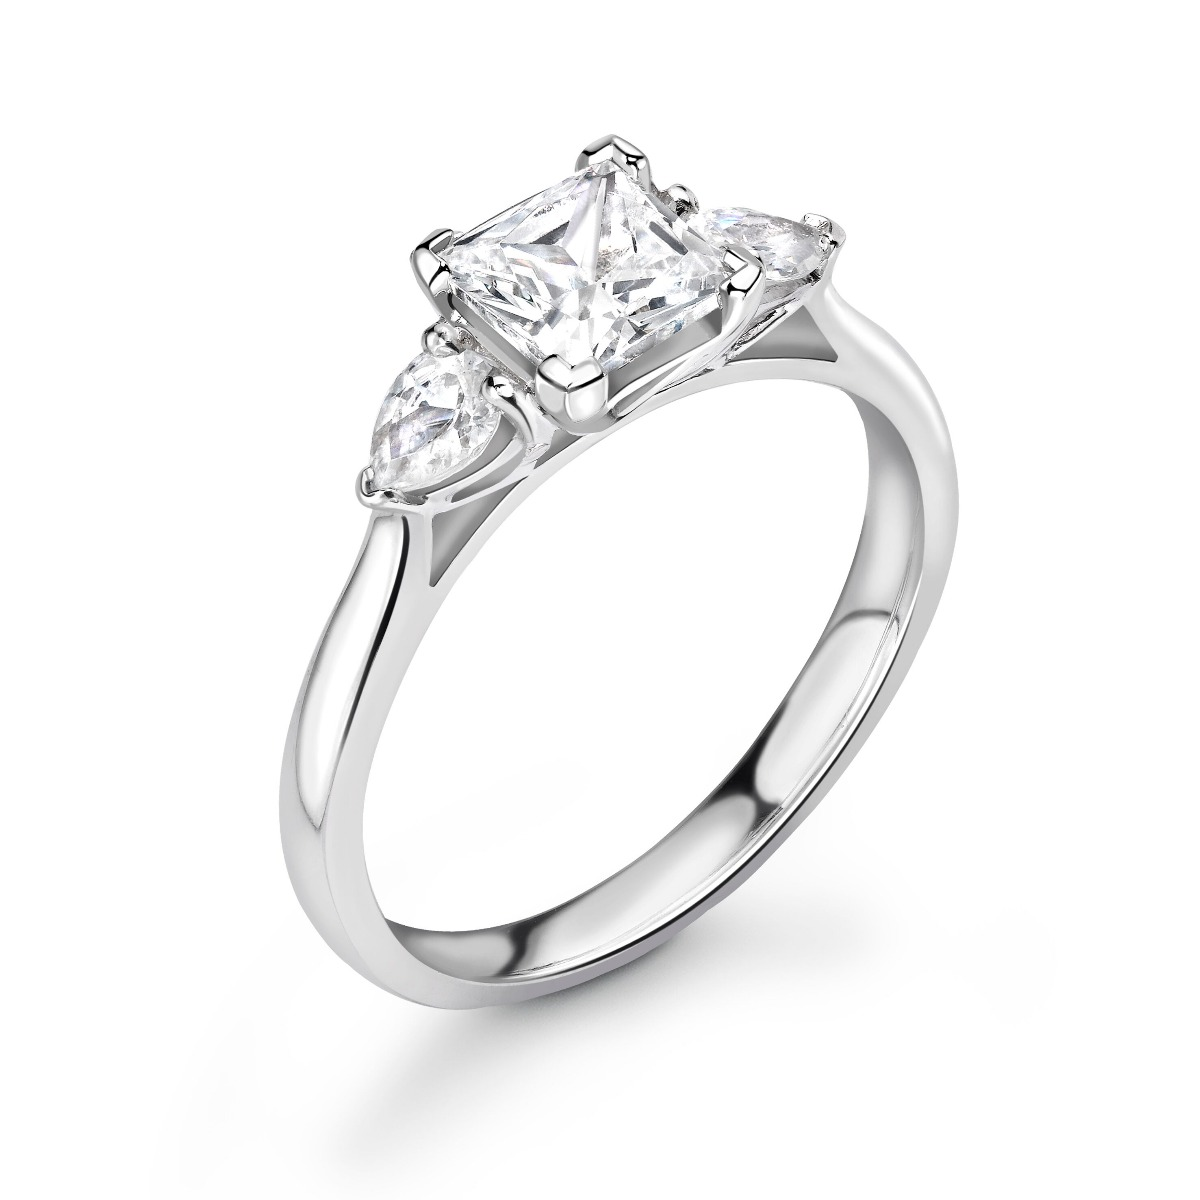 1.11ct Holly Trilogy | Princess & Pear Diamond 3 Stone Engagement Ring | 18K White Gold